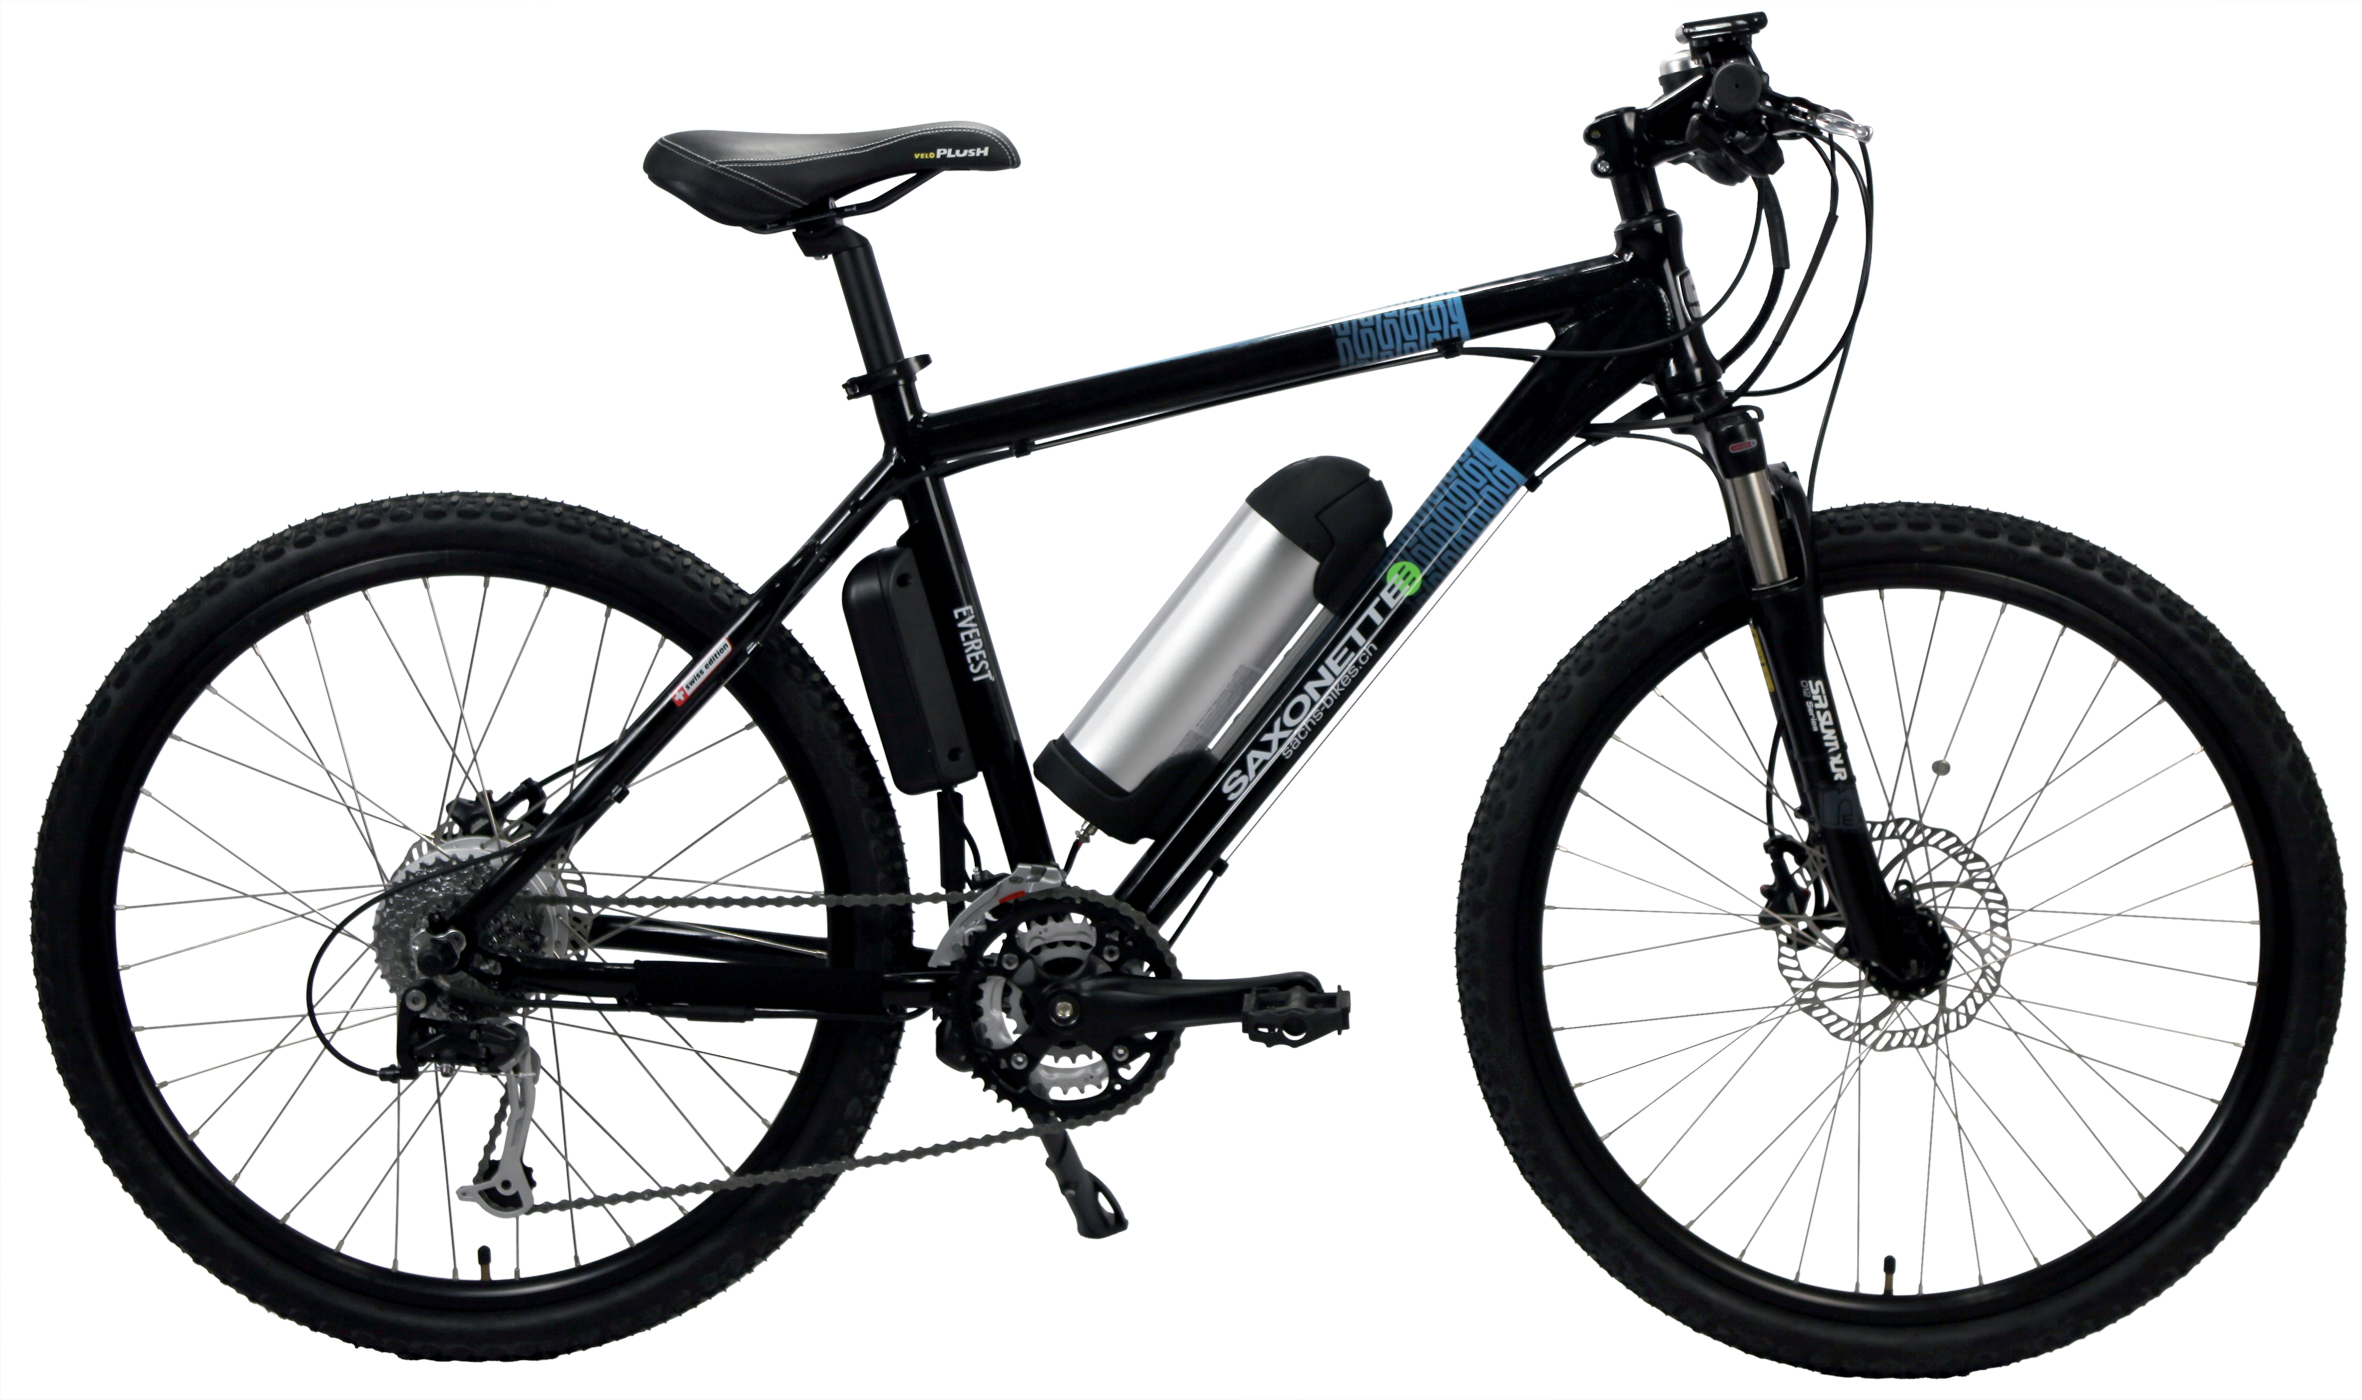 where to start with e bike easy saxonette komseq